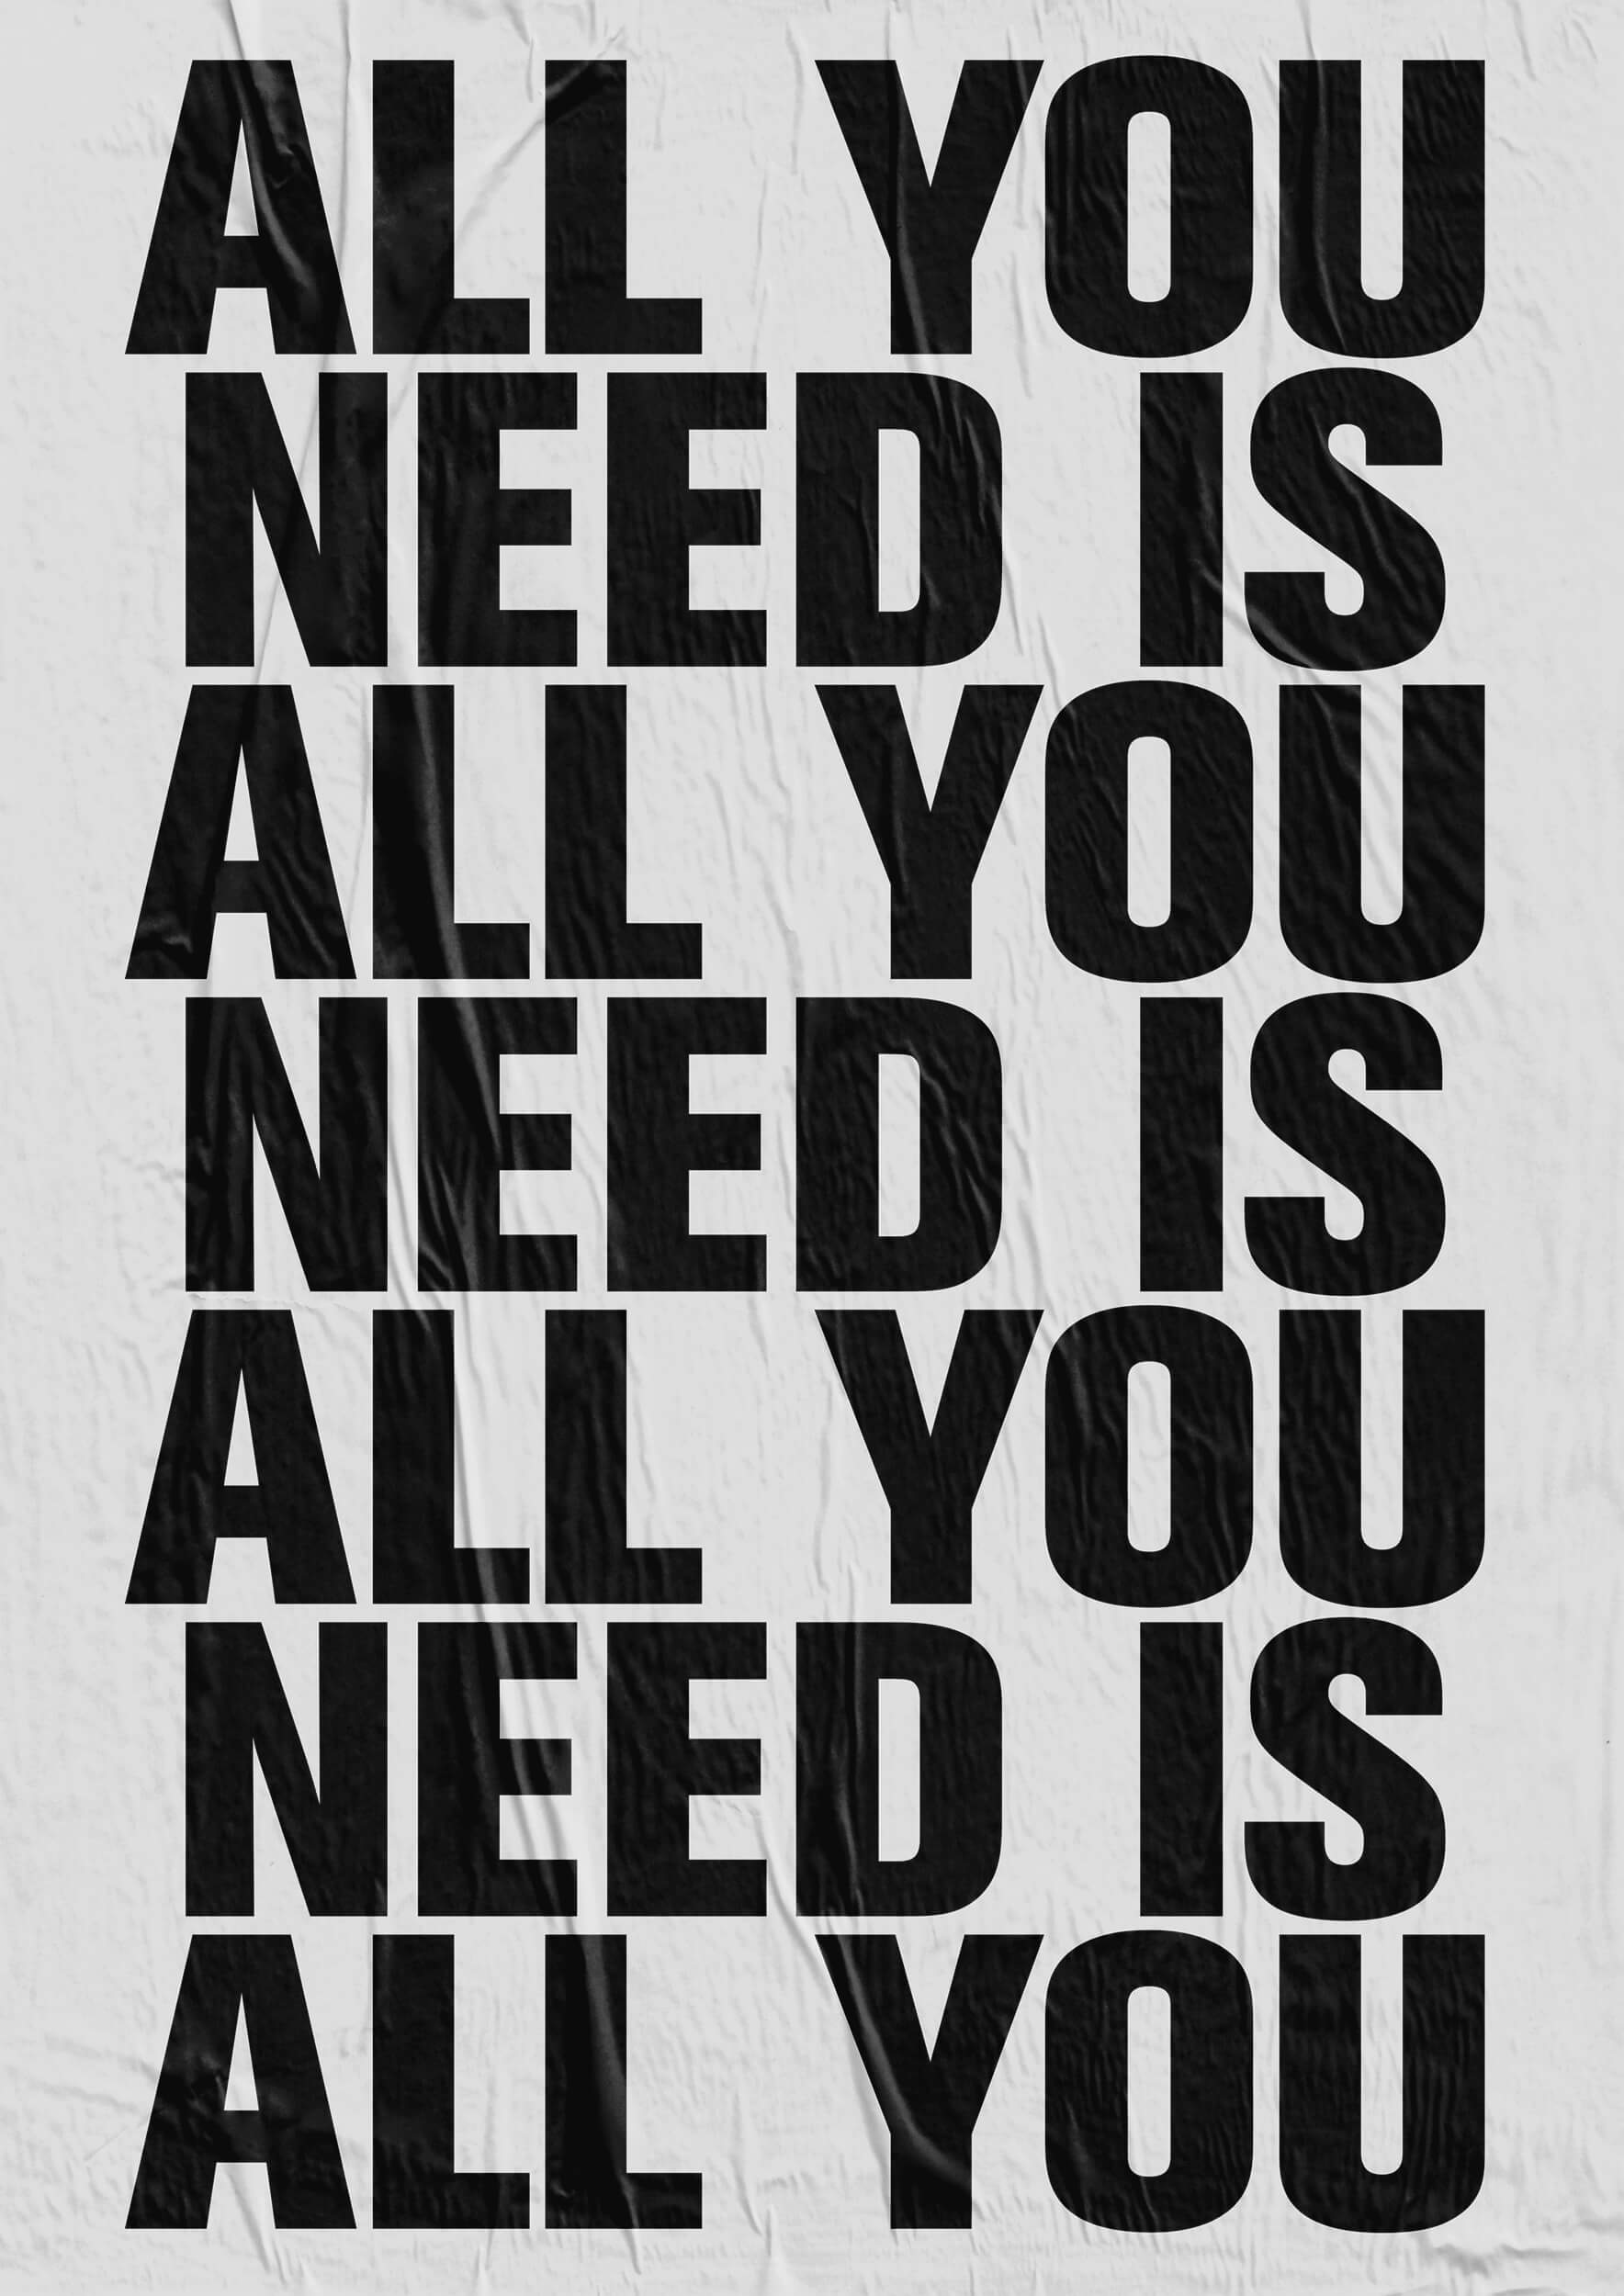 Daniel_Angermann_Allyouneed_3 All you need is all you